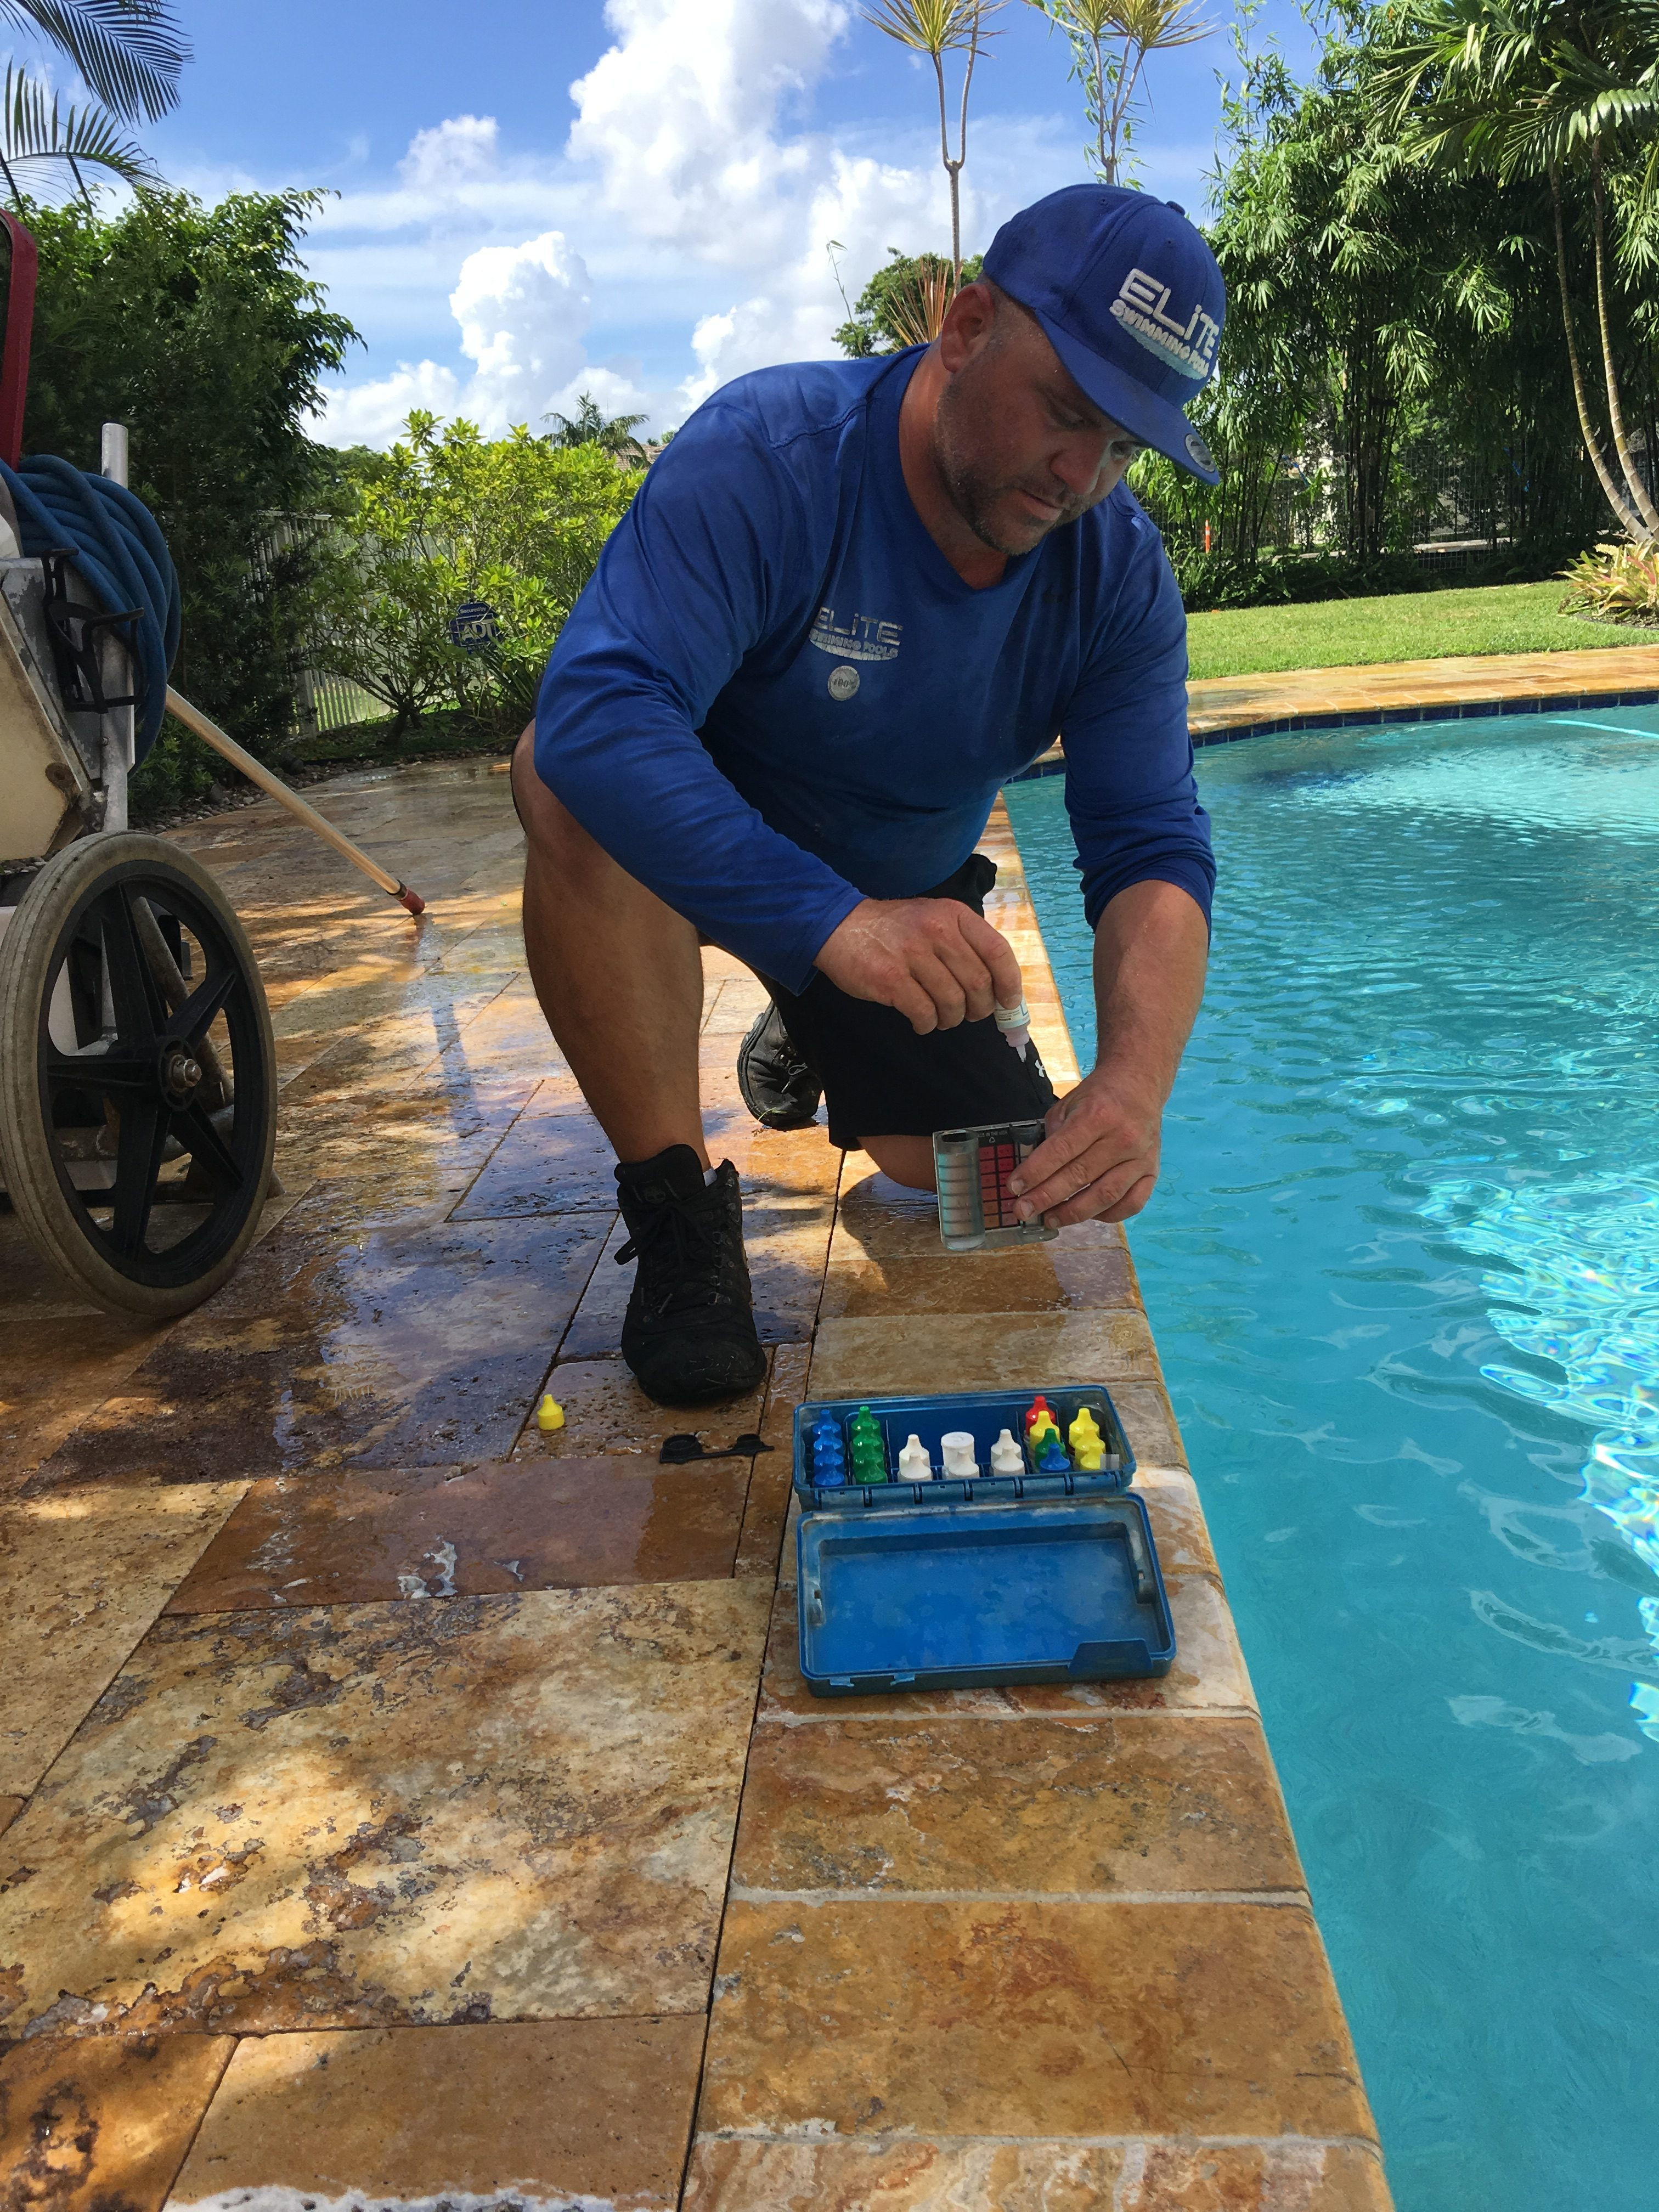 Testing a pool for pool cleaning services in South Florida